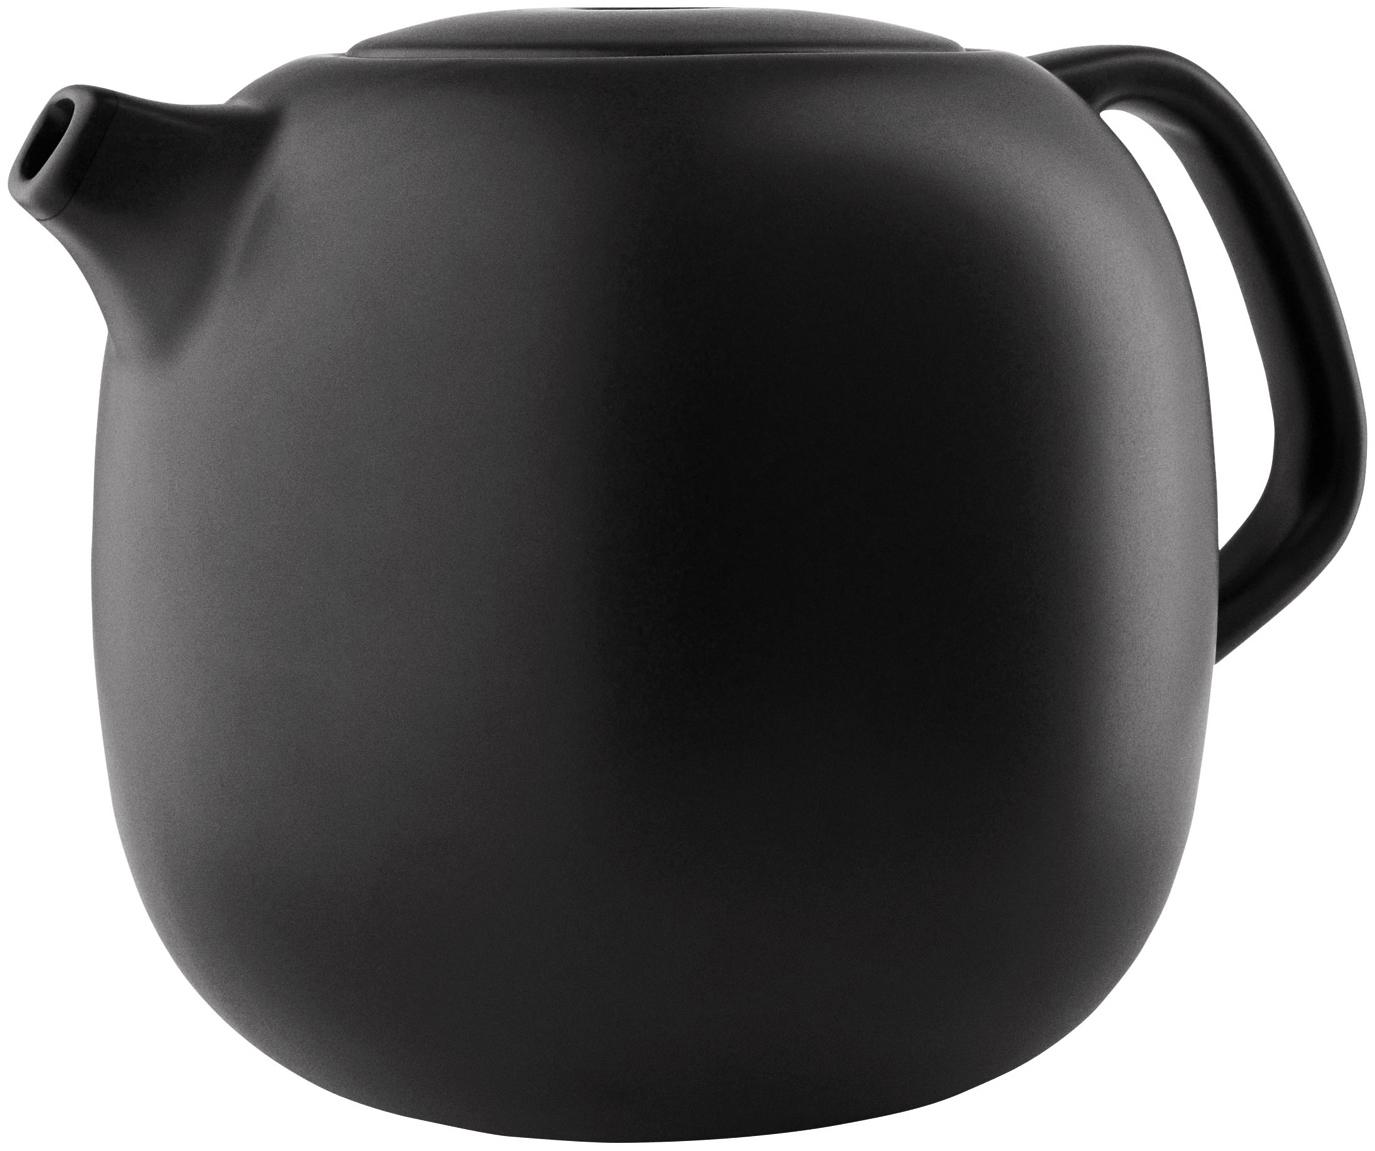 Teiera color nero opaco Nordic Kitchen, Nero opaco, 1 l